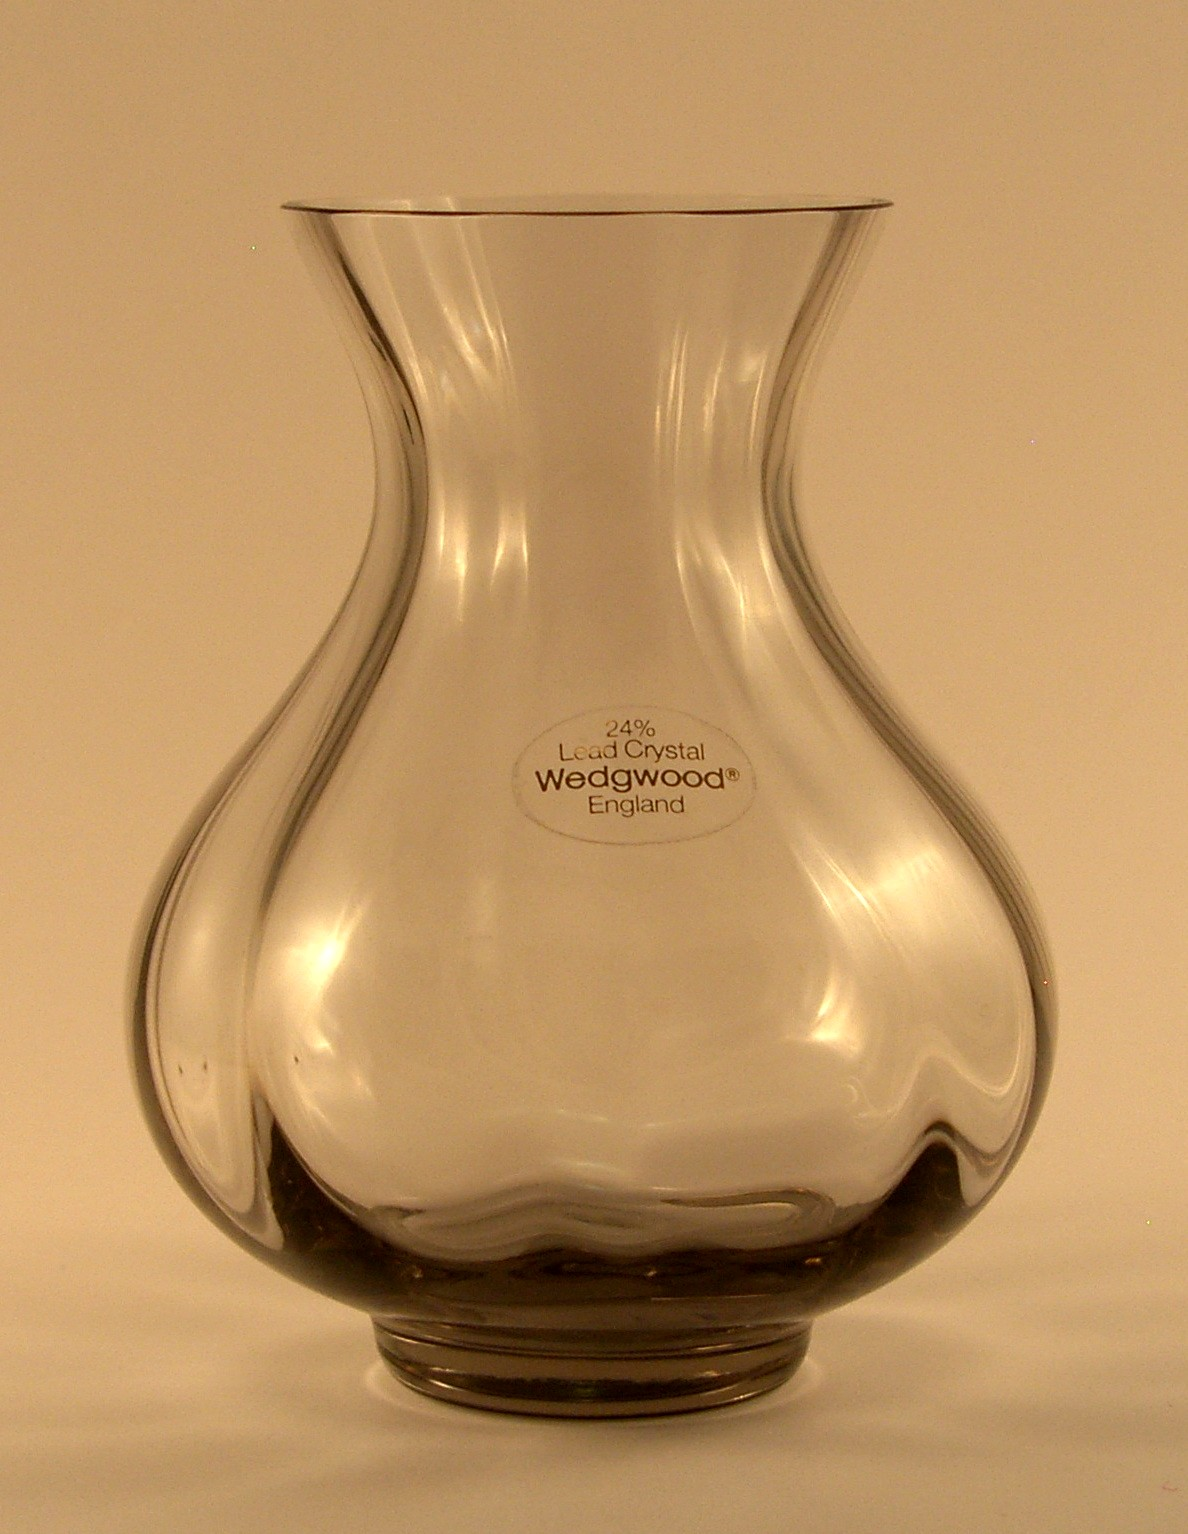 Frank thrower glass designs antigone vase reviewsmspy